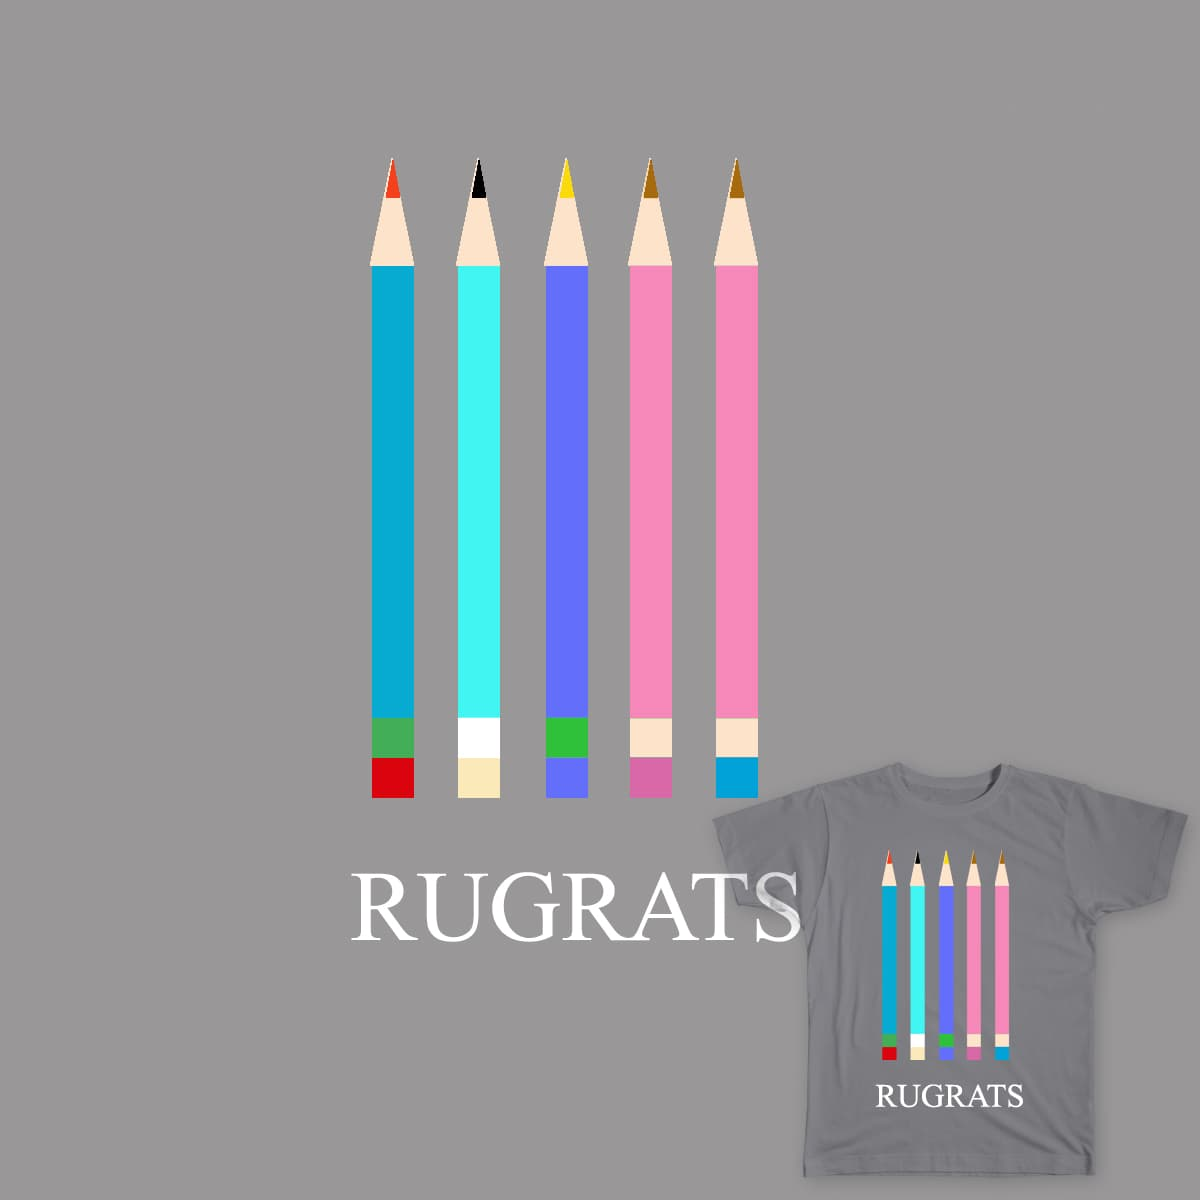 RUGRAT-PENCILS by nicoler20 on Threadless